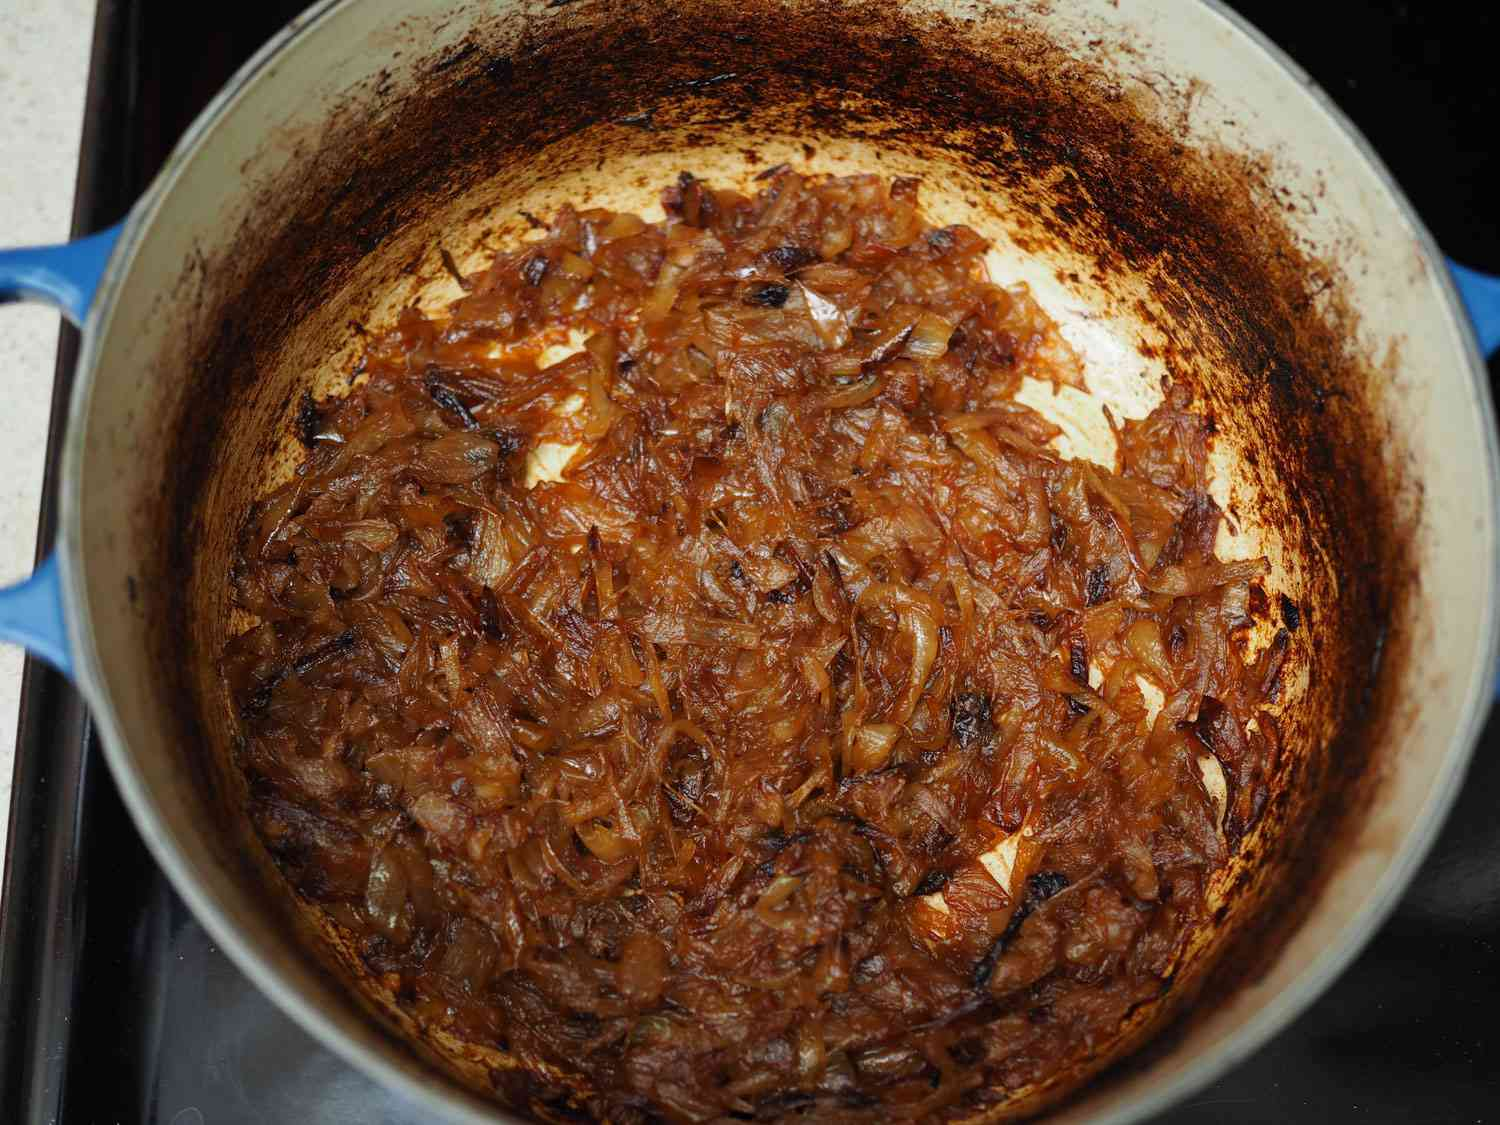 Dutch oven filled with onions that have been caramelized in the oven.